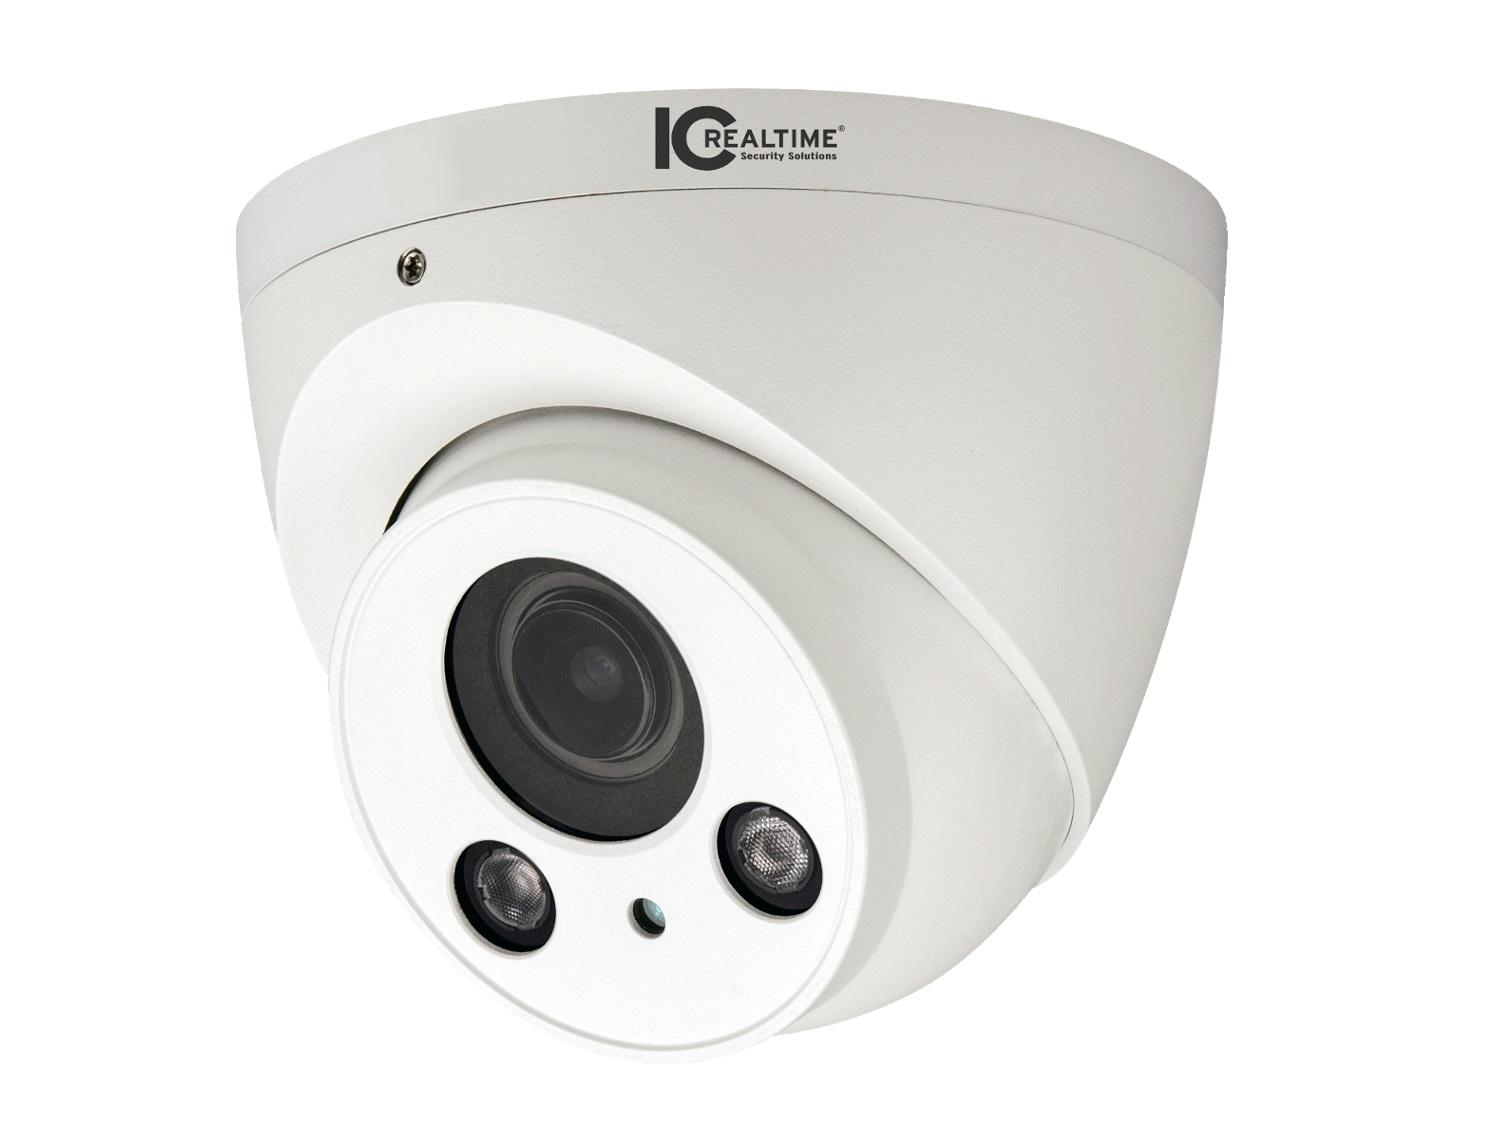 AVS-4MD5123-VIR-DP 4MP Water Proof Mini Dome HD-AVS Camera with 180ft of Smart IR/2.7-12mm Lens/IP67/12VDC/24VAC by ICRealtime